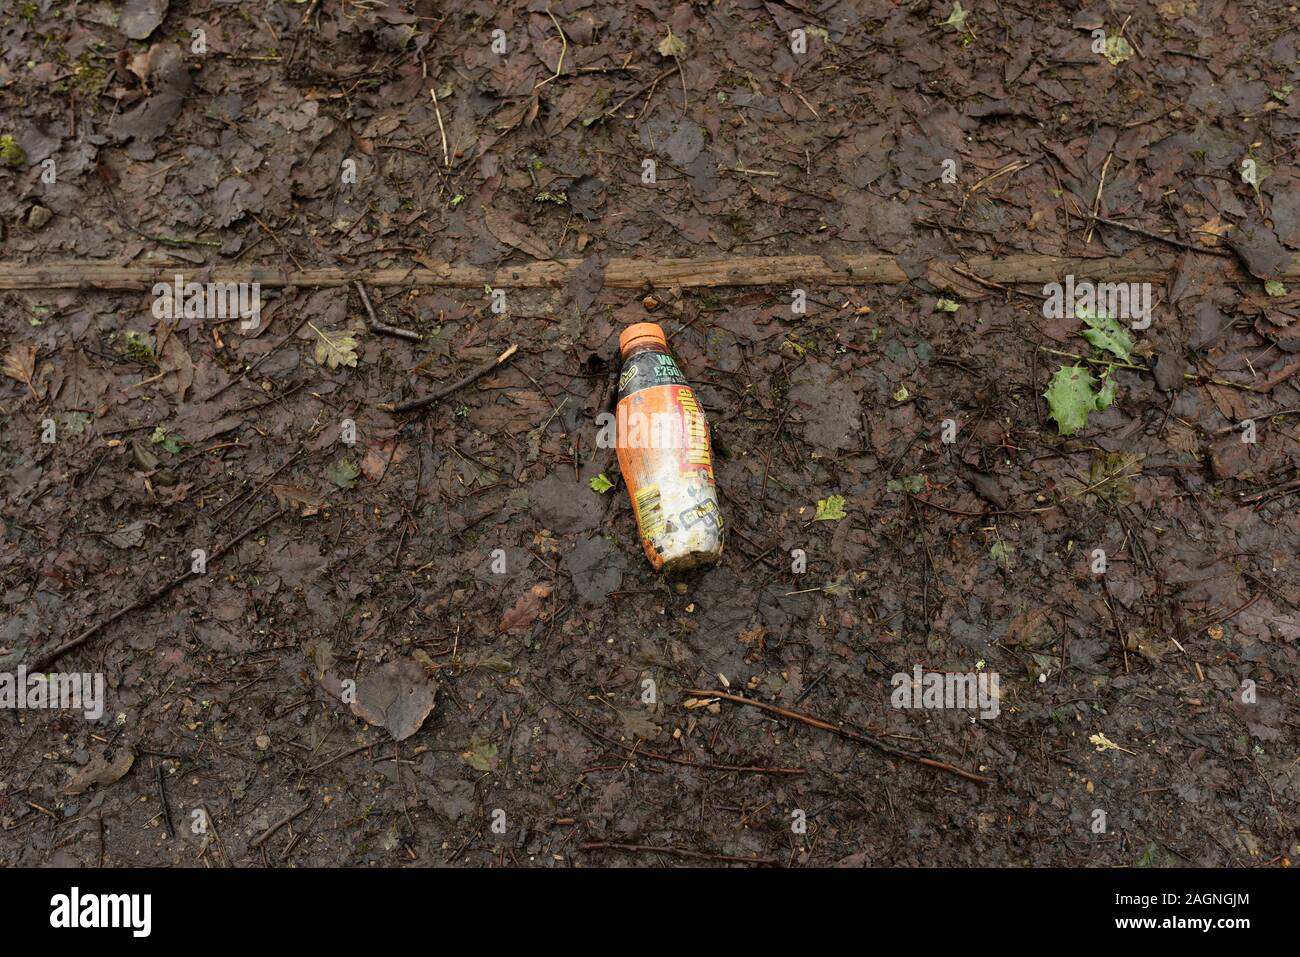 Plastic bottle thrown away on rotting leaves in countryside in burrs park bury lancashire uk Stock Photo